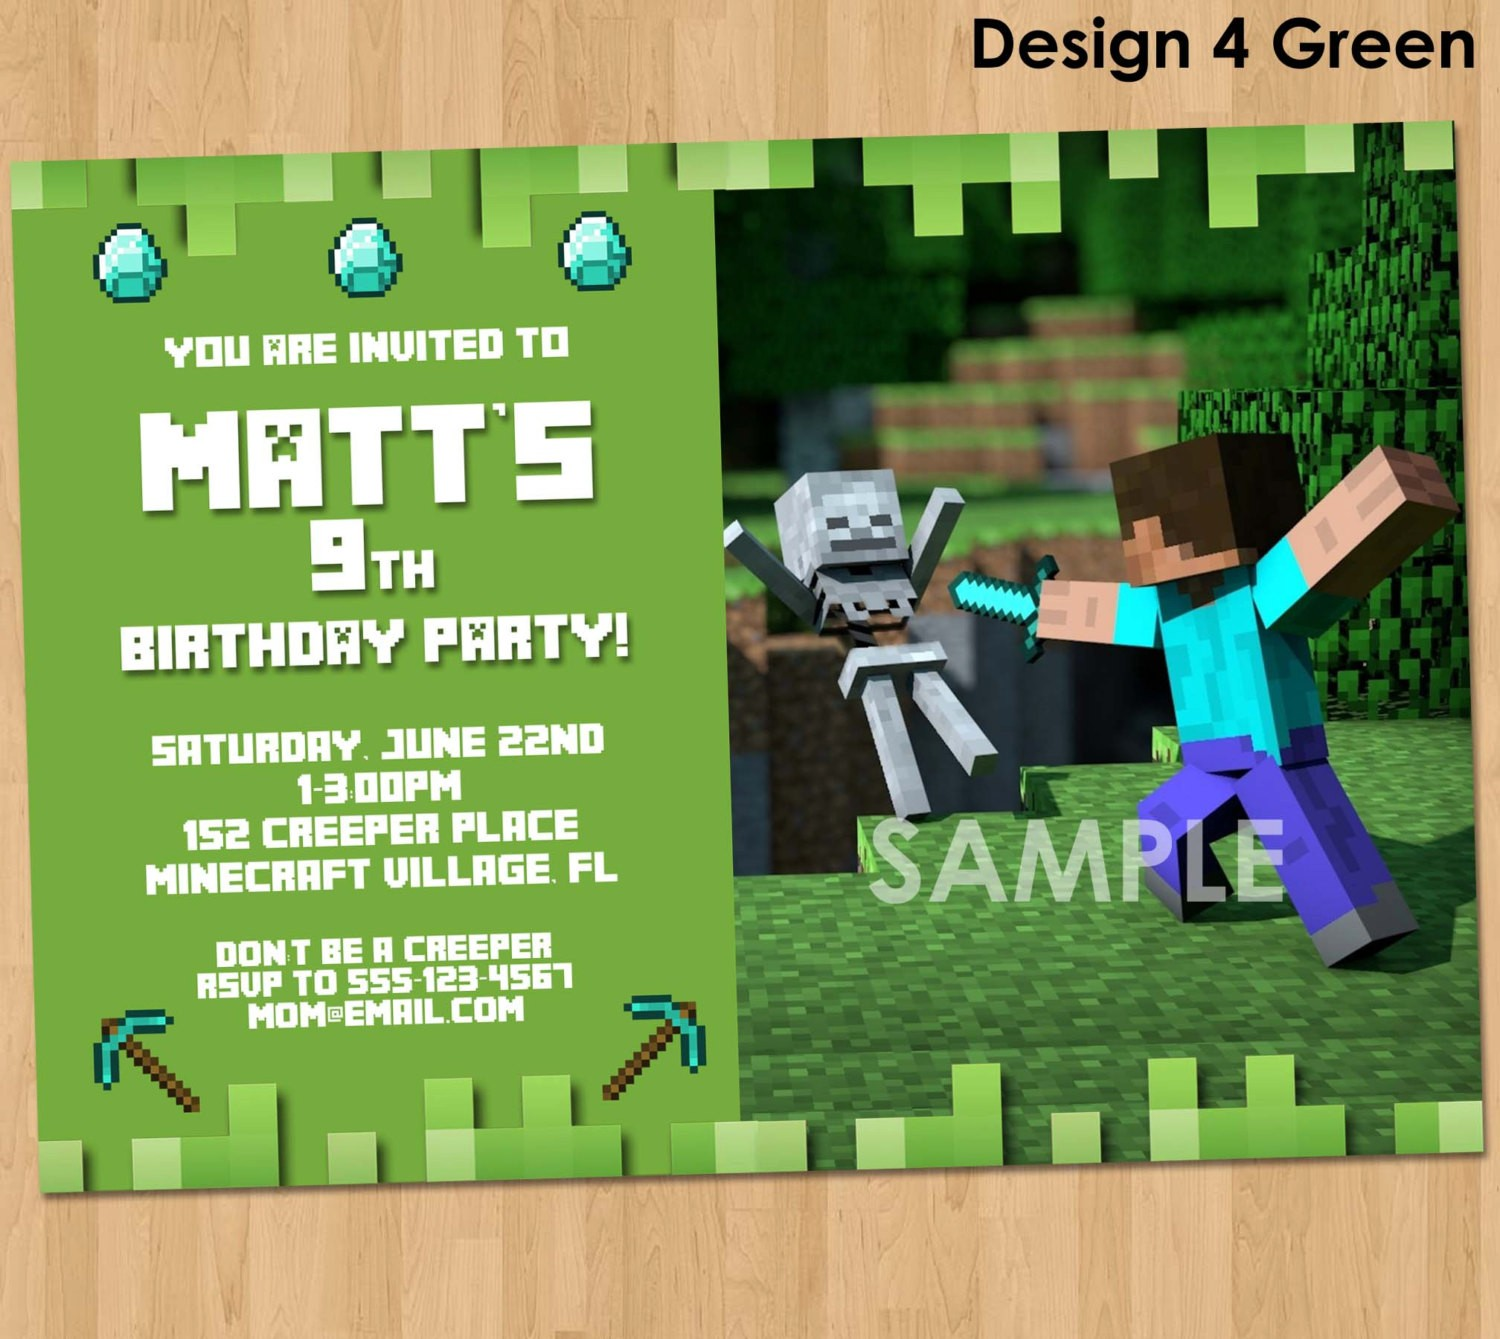 minecraft happy birthday card ; 2014%2520party%2520favors%2520-%2520minecraft%2520birthday%2520invitation%2520printable%2520minecraft-f76800